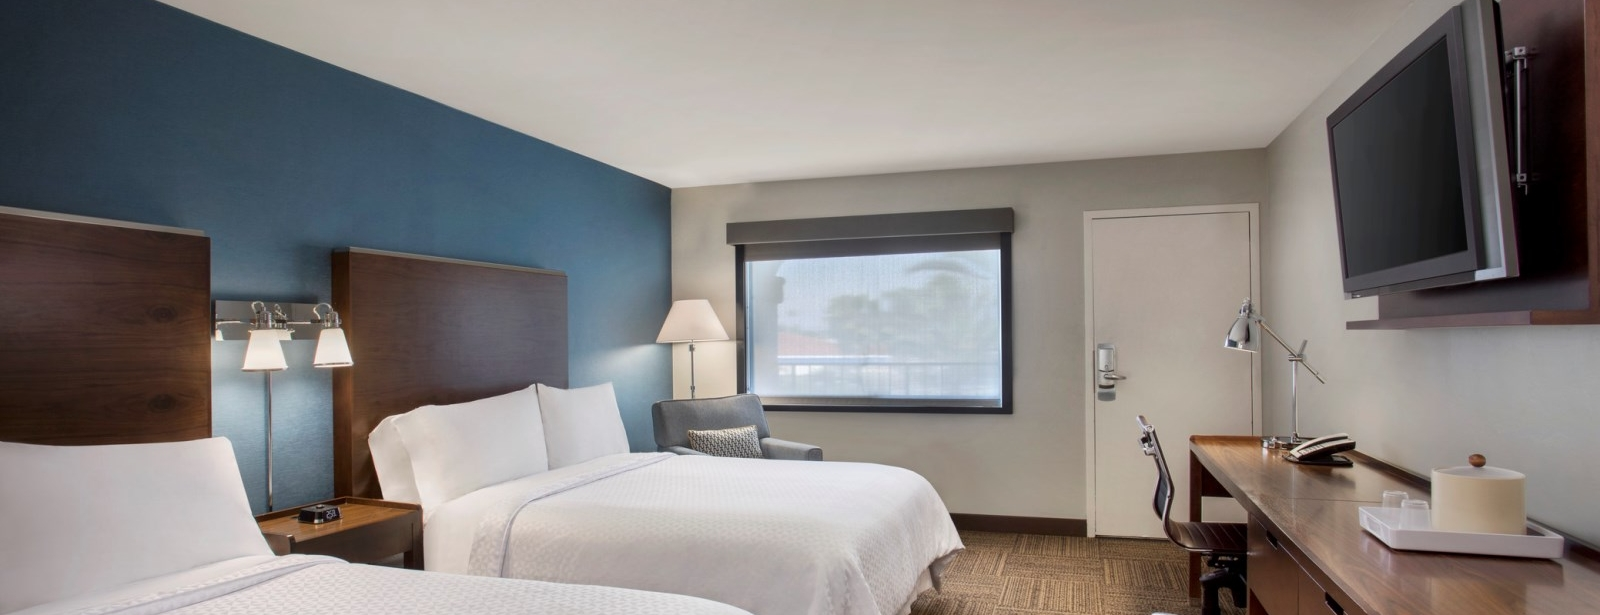 anaheim accommodations | Four Points by Sheraton Anaheim